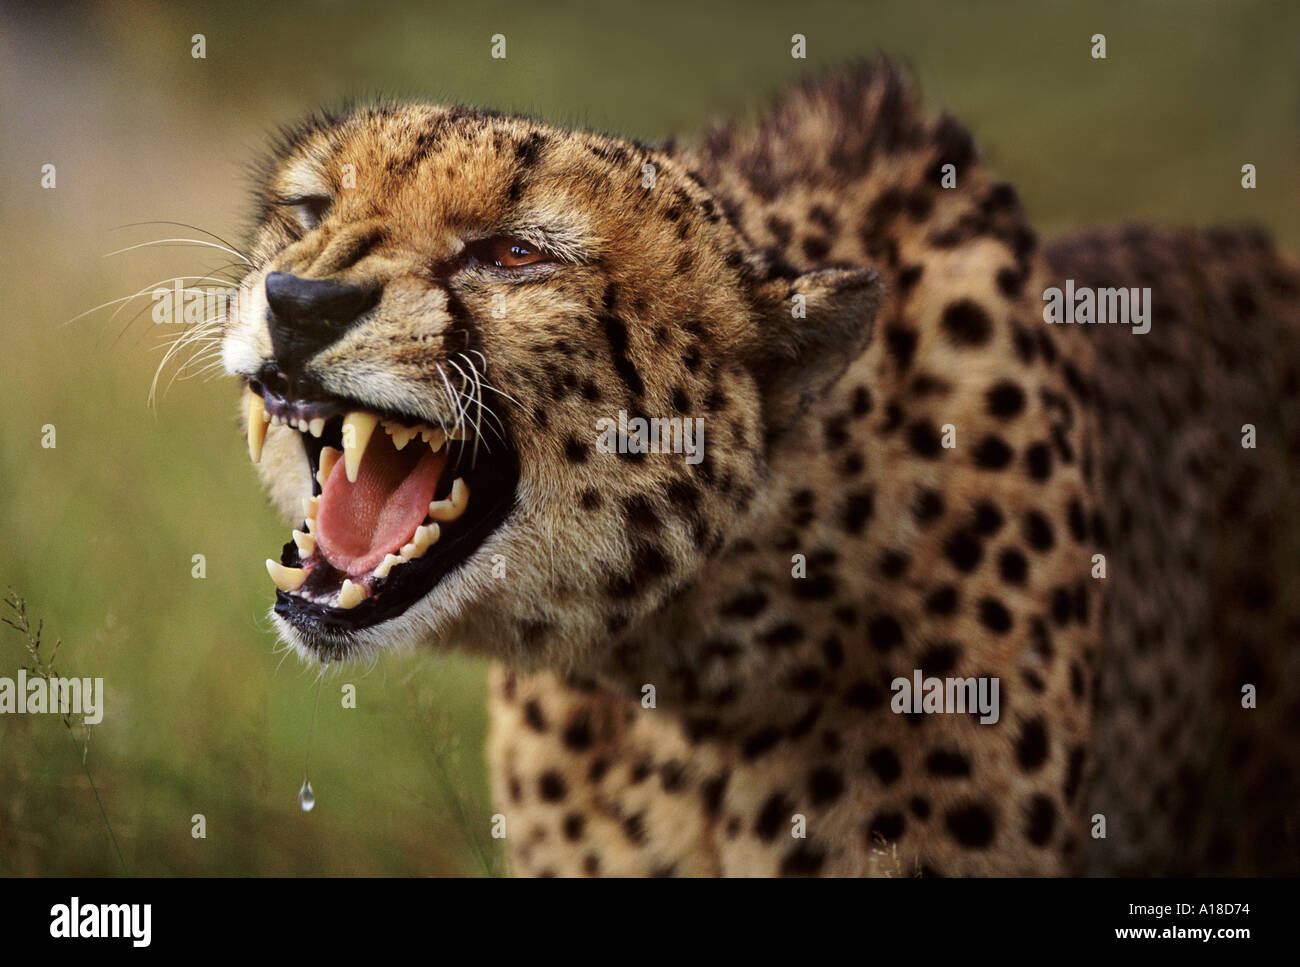 Snarling cheetah South Africa - Stock Image